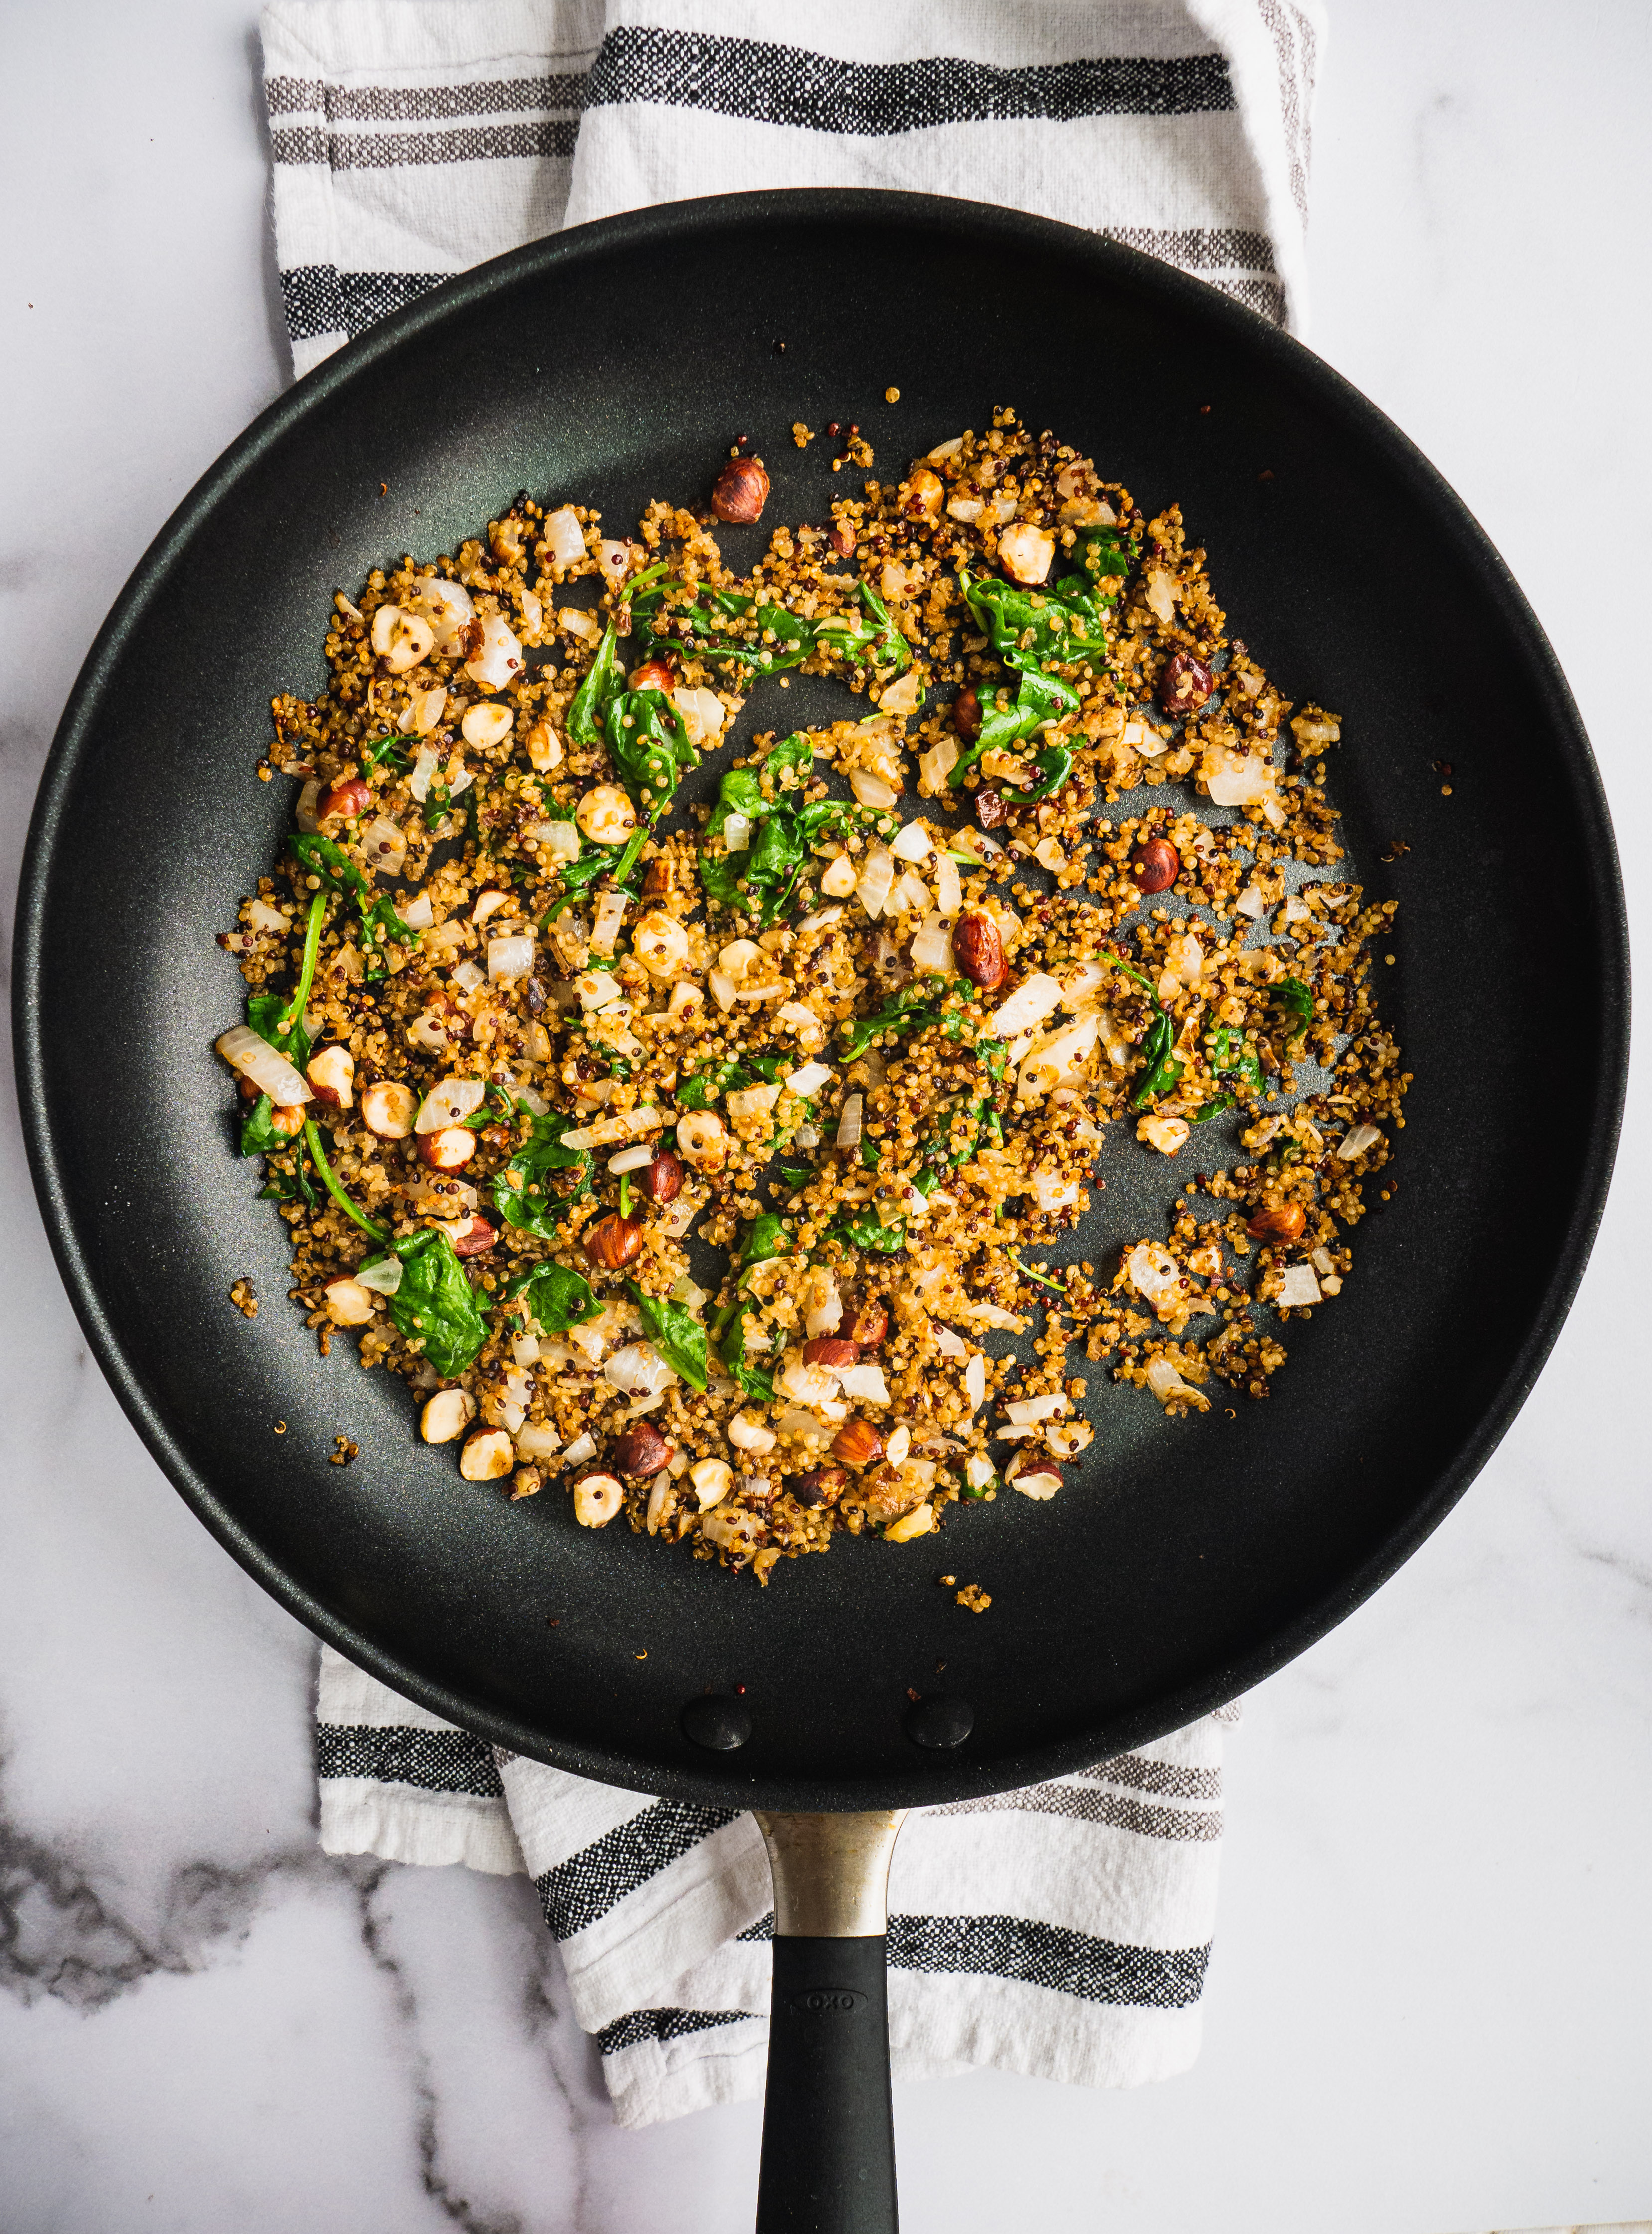 A sauteing pan with quinoa, spinach, hazelnuts, and onion.